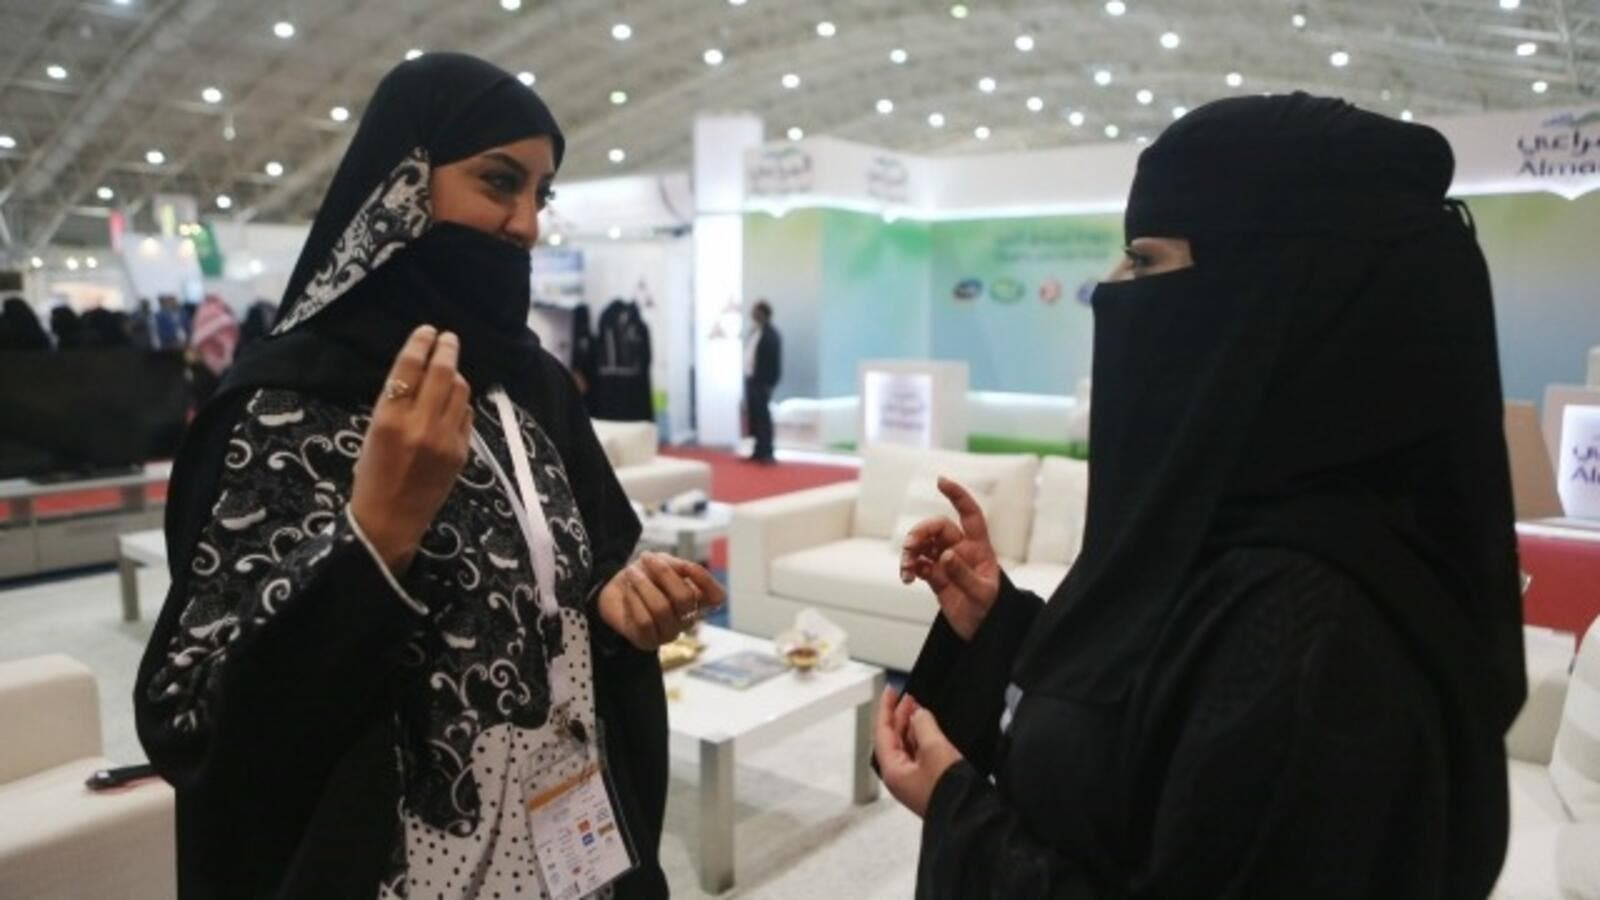 Saudi Arabia's Vision 2030 emphasizes the importance of nurturing female talent, and acknowledges women's significant contribution to the development of Saudi society and economy. (File photo)